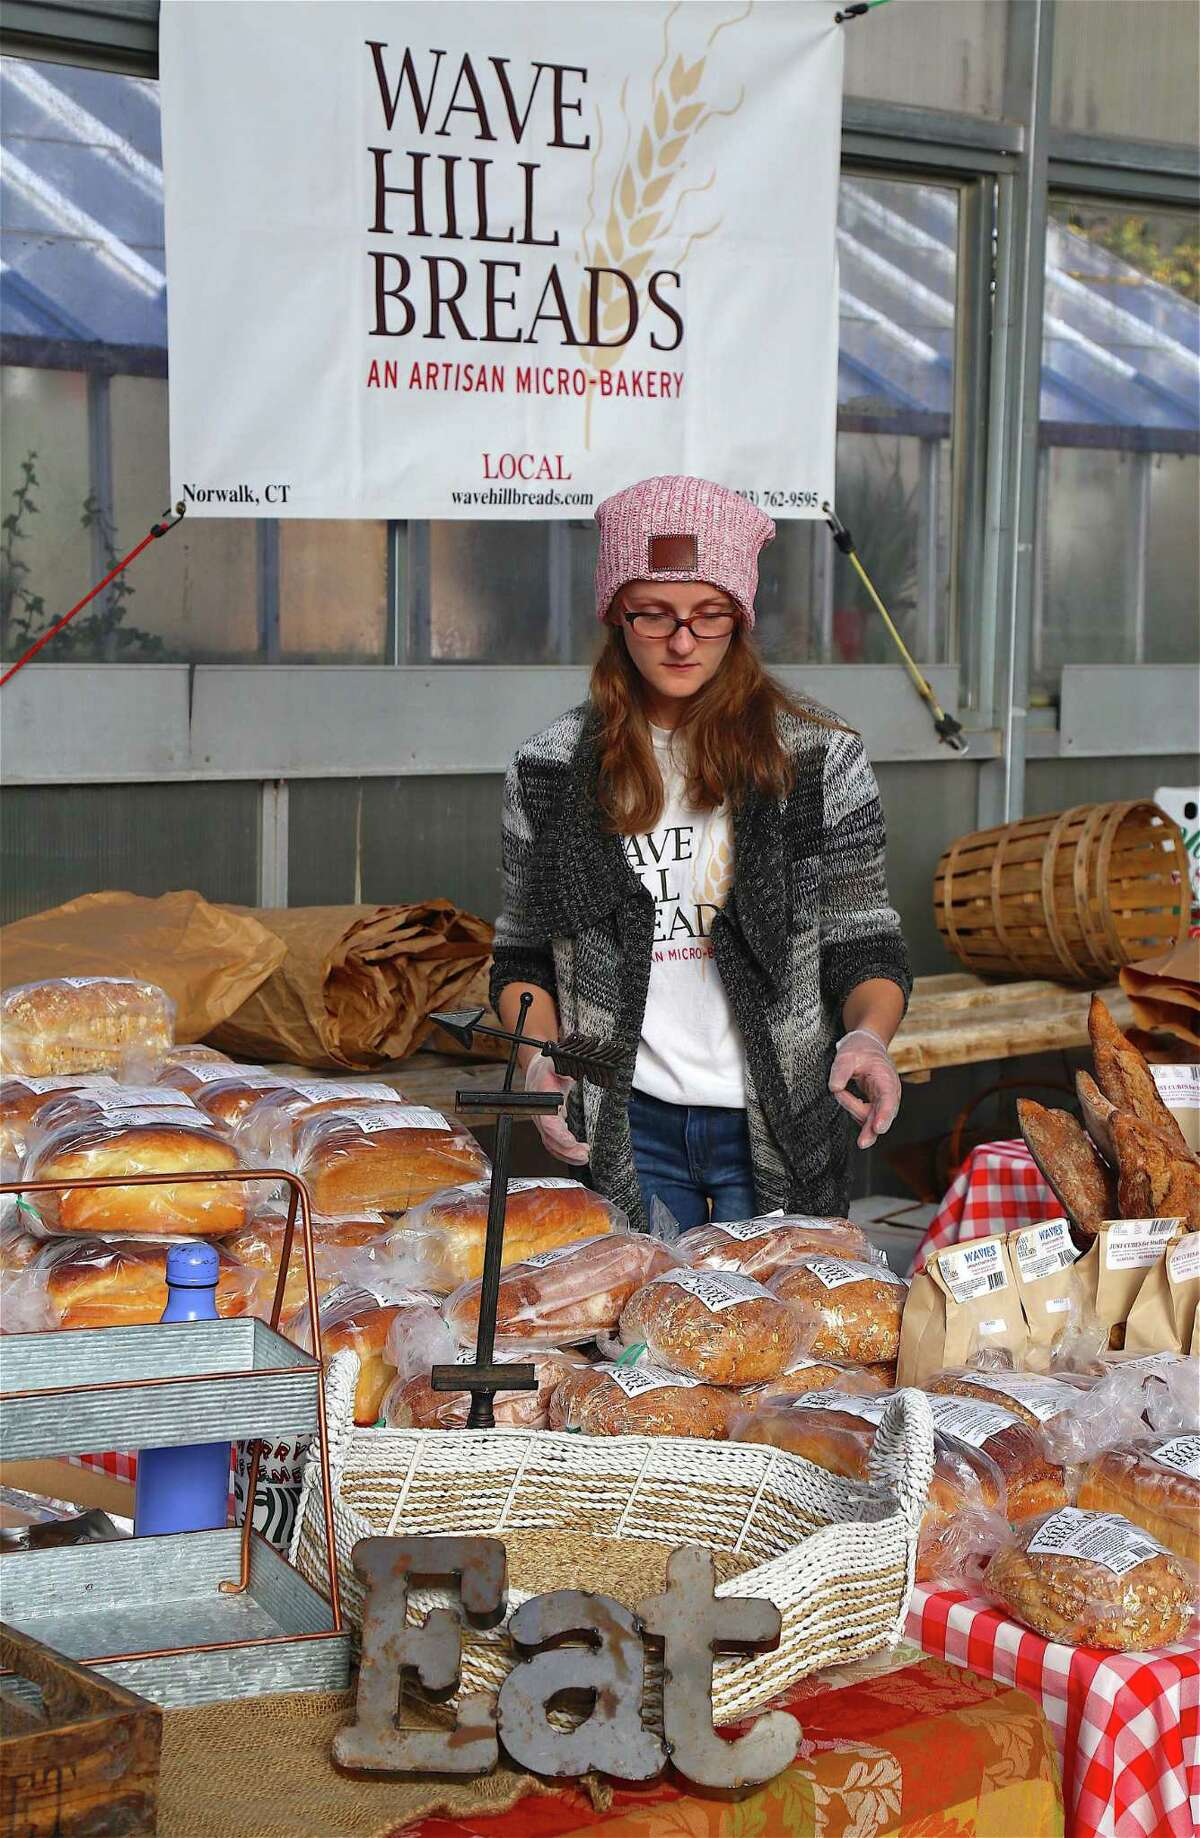 Erica Peters of Wave Hill Breads of Norwalk prepares the products at the Westport Farmer's Market on Saturday, Nov. 16, 2019, in Westport, Conn.